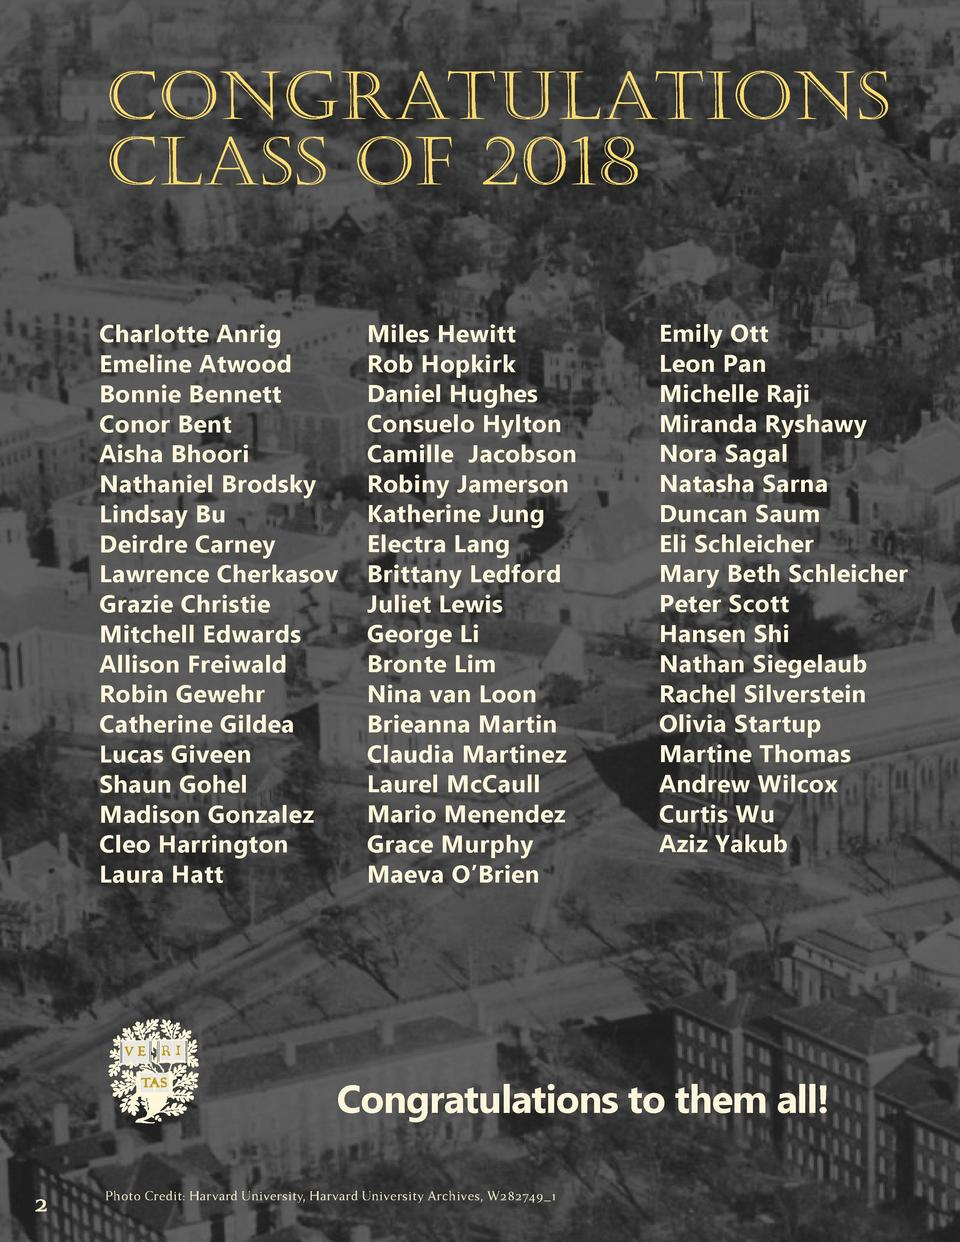 CONGRATULATIONS CLASS OF 2018 Charlotte Anrig Emeline Atwood Bonnie Bennett Conor Bent Aisha Bhoori Nathaniel Brodsky Lind...